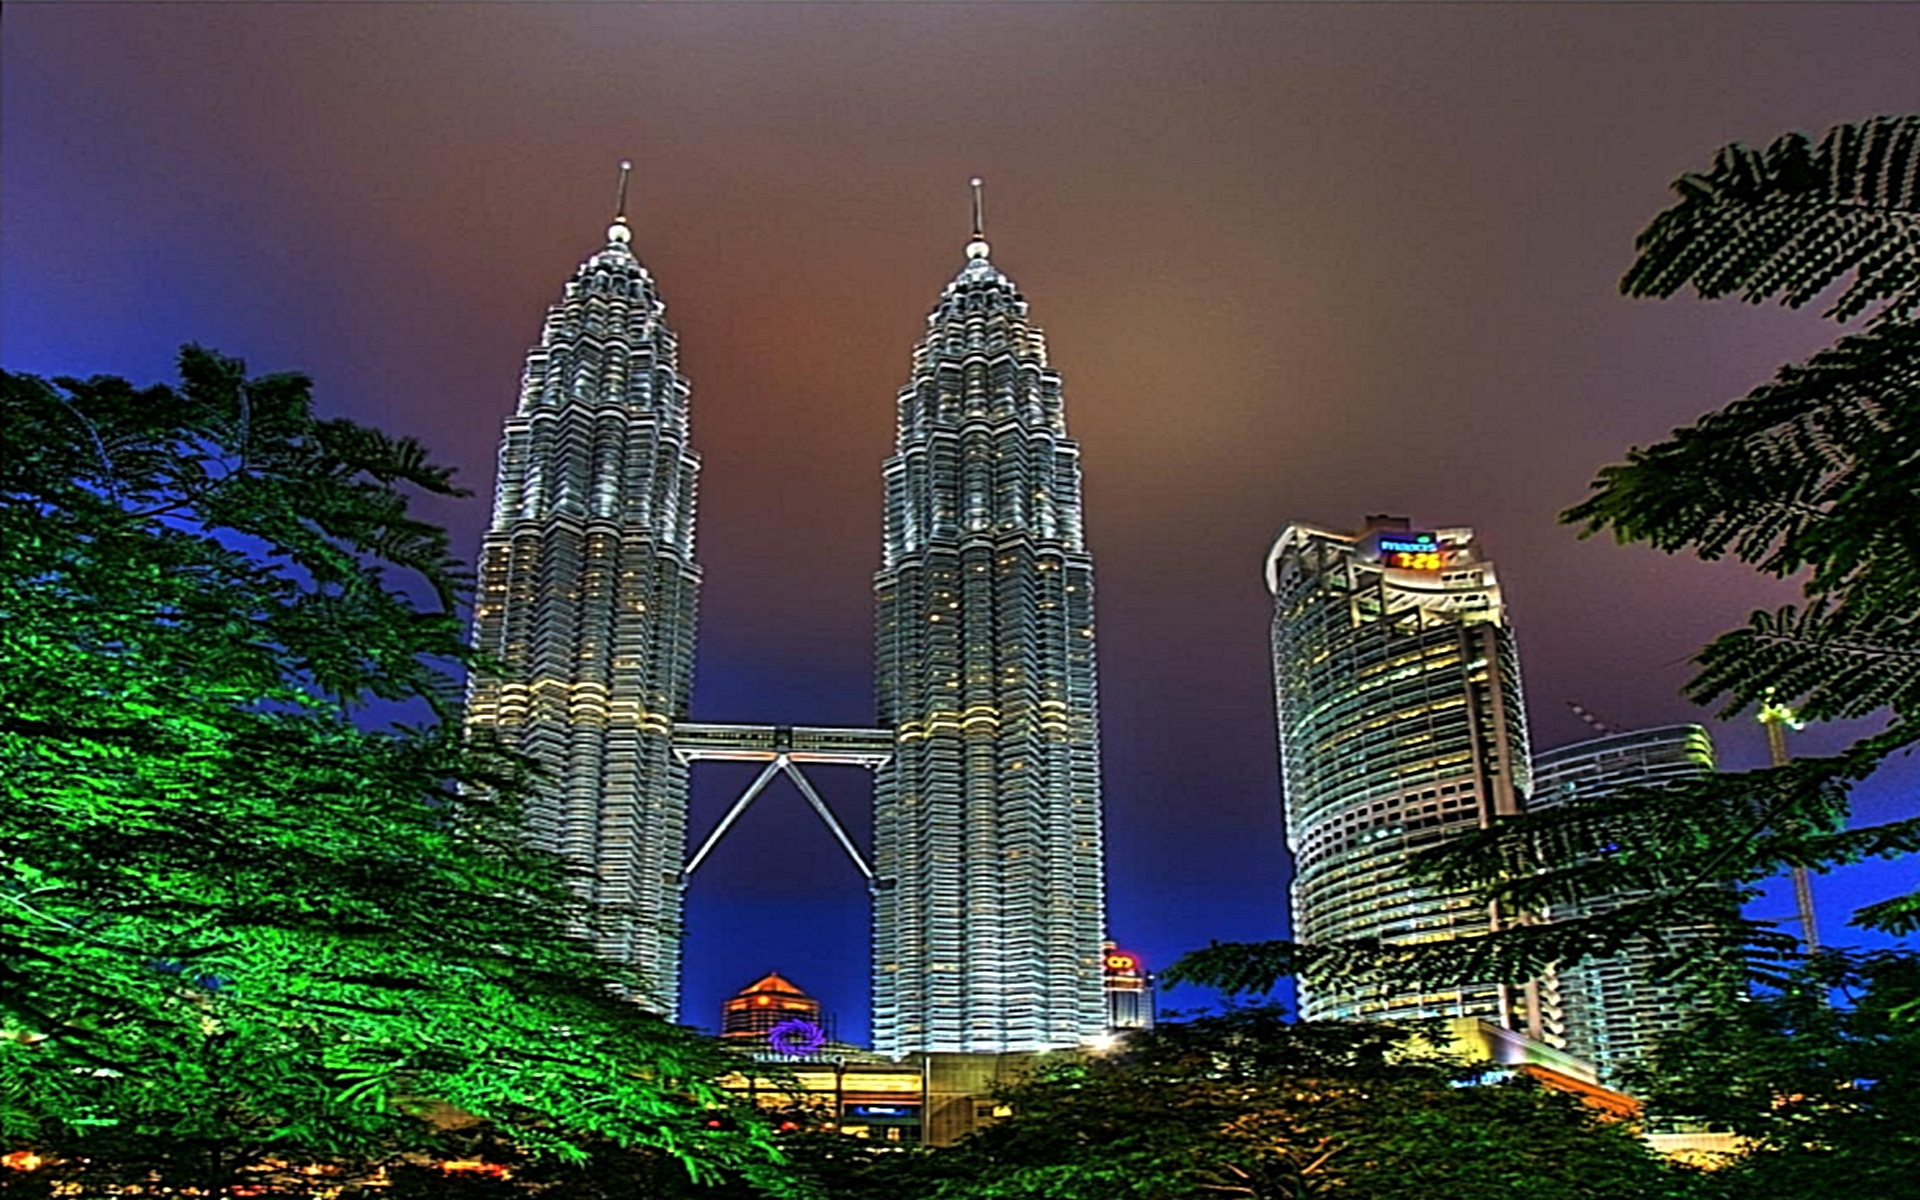 Malaysia wallpaper hd wallpapersafari for Wallpaper home malaysia